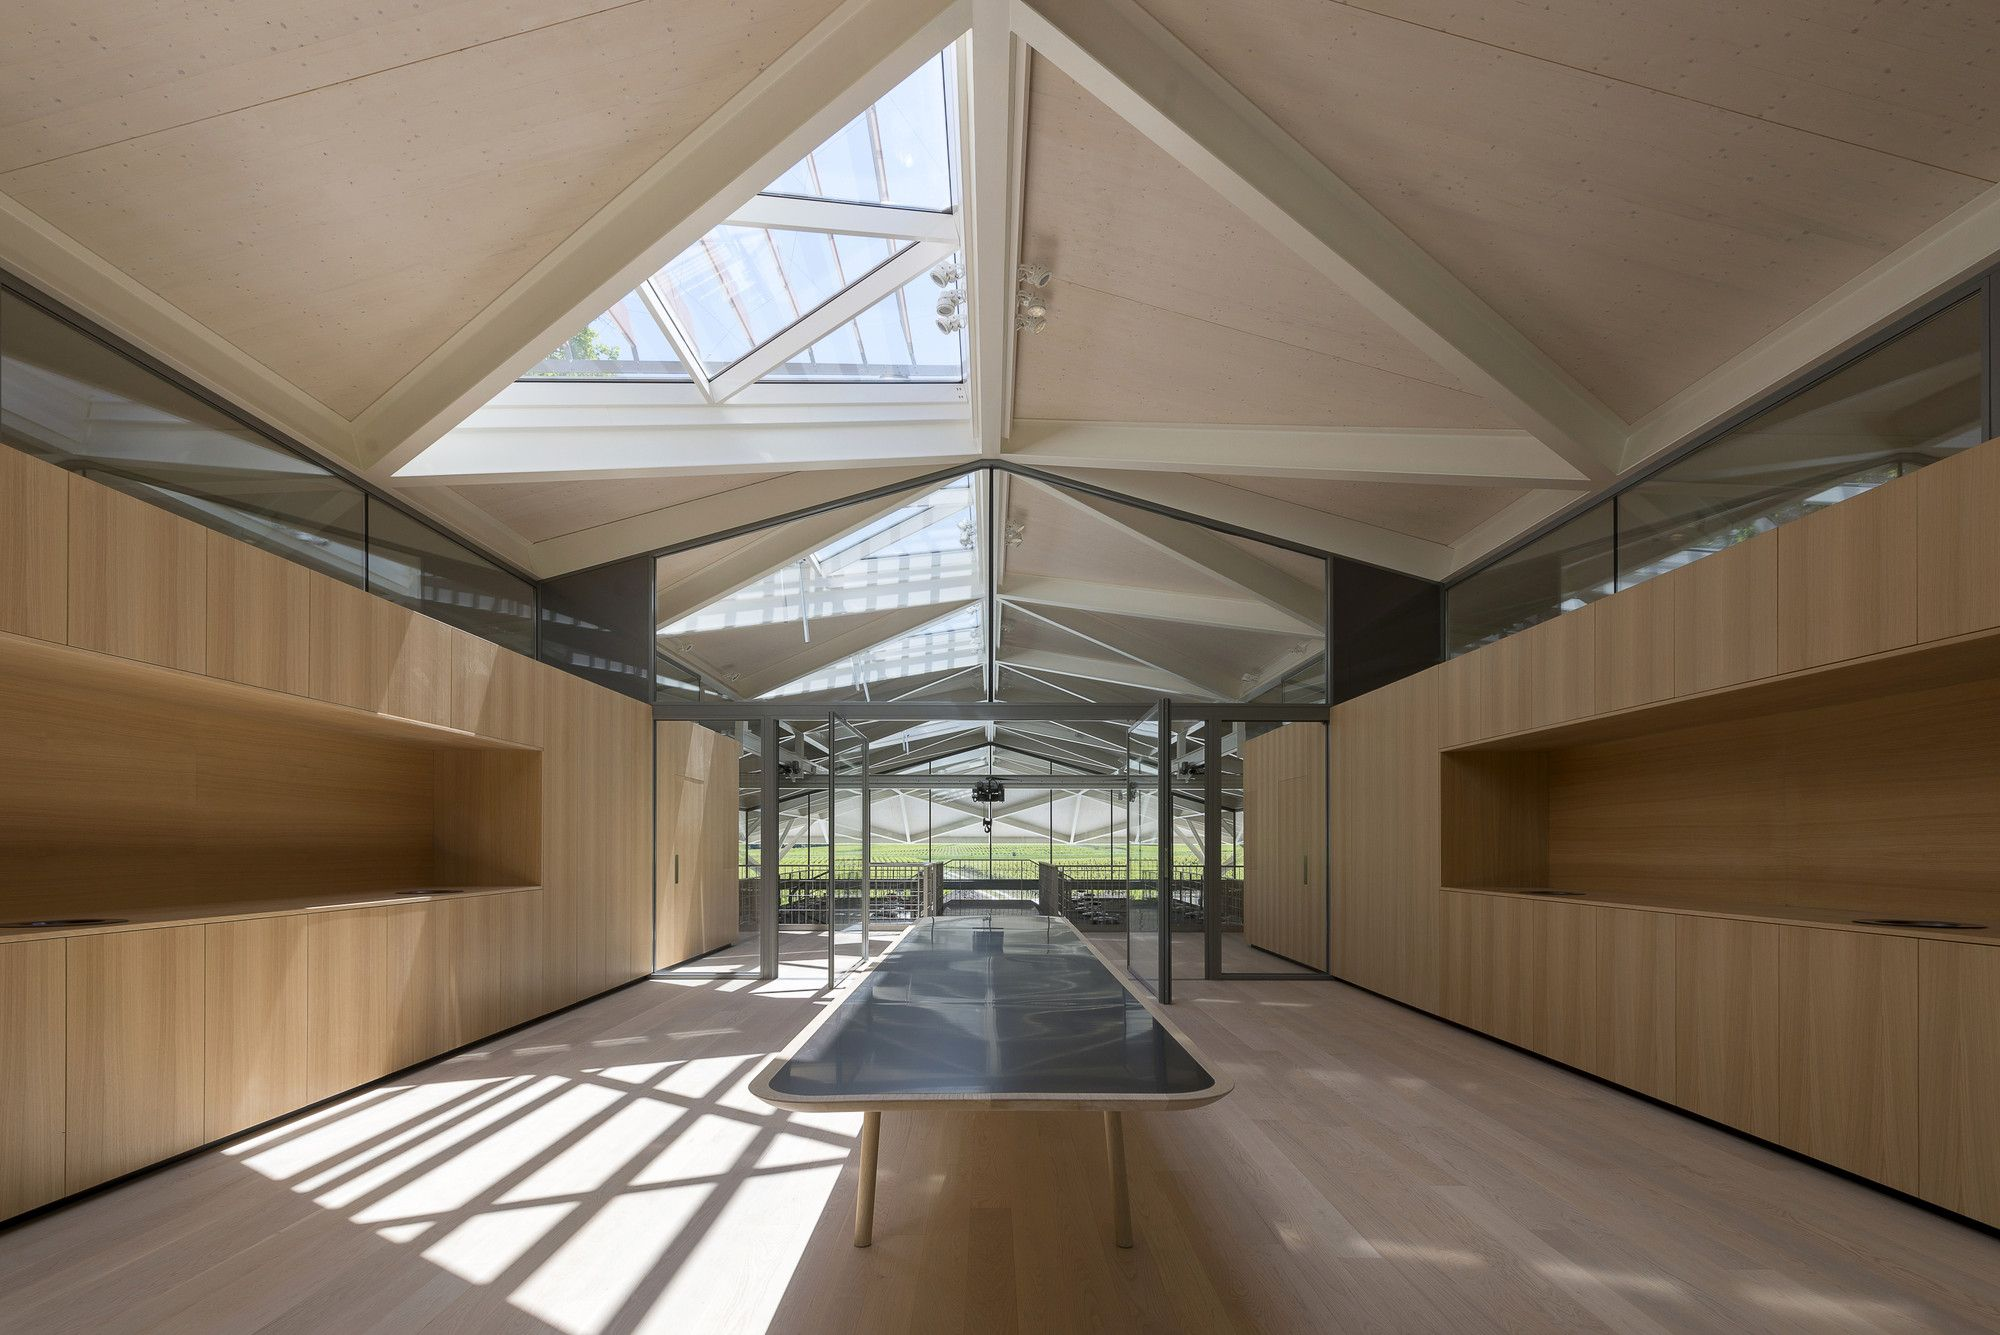 Chateau Margaux Winery. Location: Margaux, Bordeaux, France; firm: Foster + Partners; photos: Nigel Young / Foster+ Partners, year: 2015